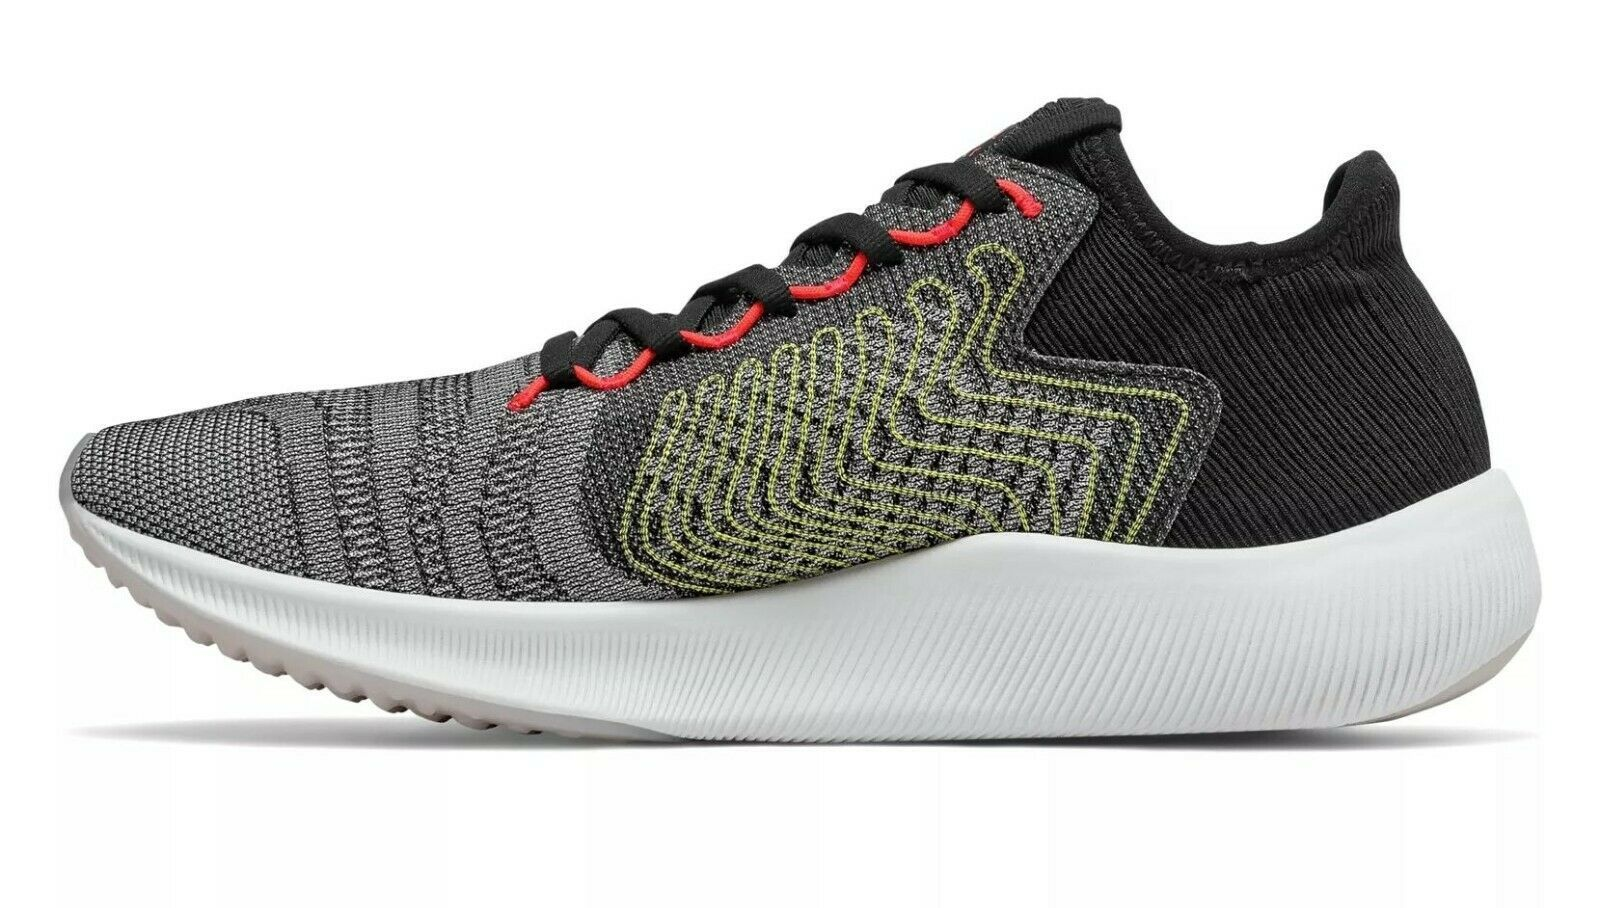 New Balance FuelCell Rebel 5280 Racing Shoes Jogging Running Cushion Lightweight image 2